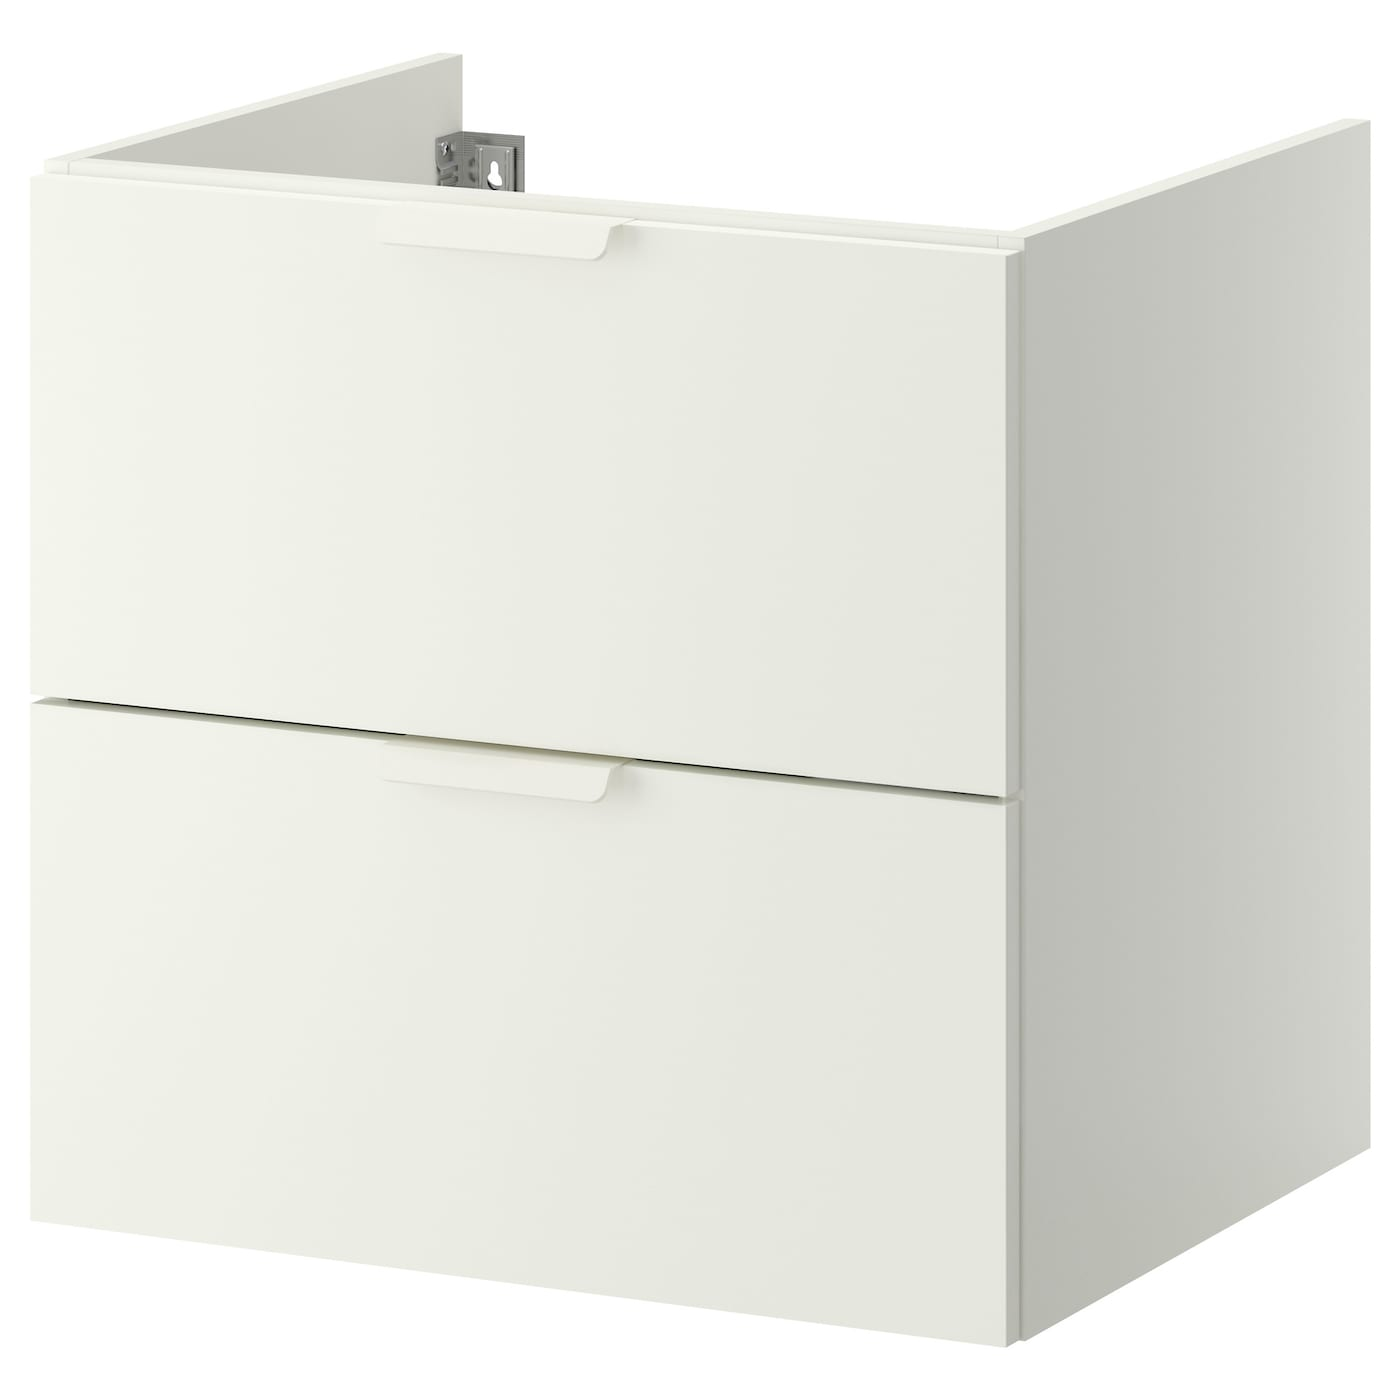 godmorgon meuble lavabo 2tir blanc 60x47x58 cm ikea. Black Bedroom Furniture Sets. Home Design Ideas